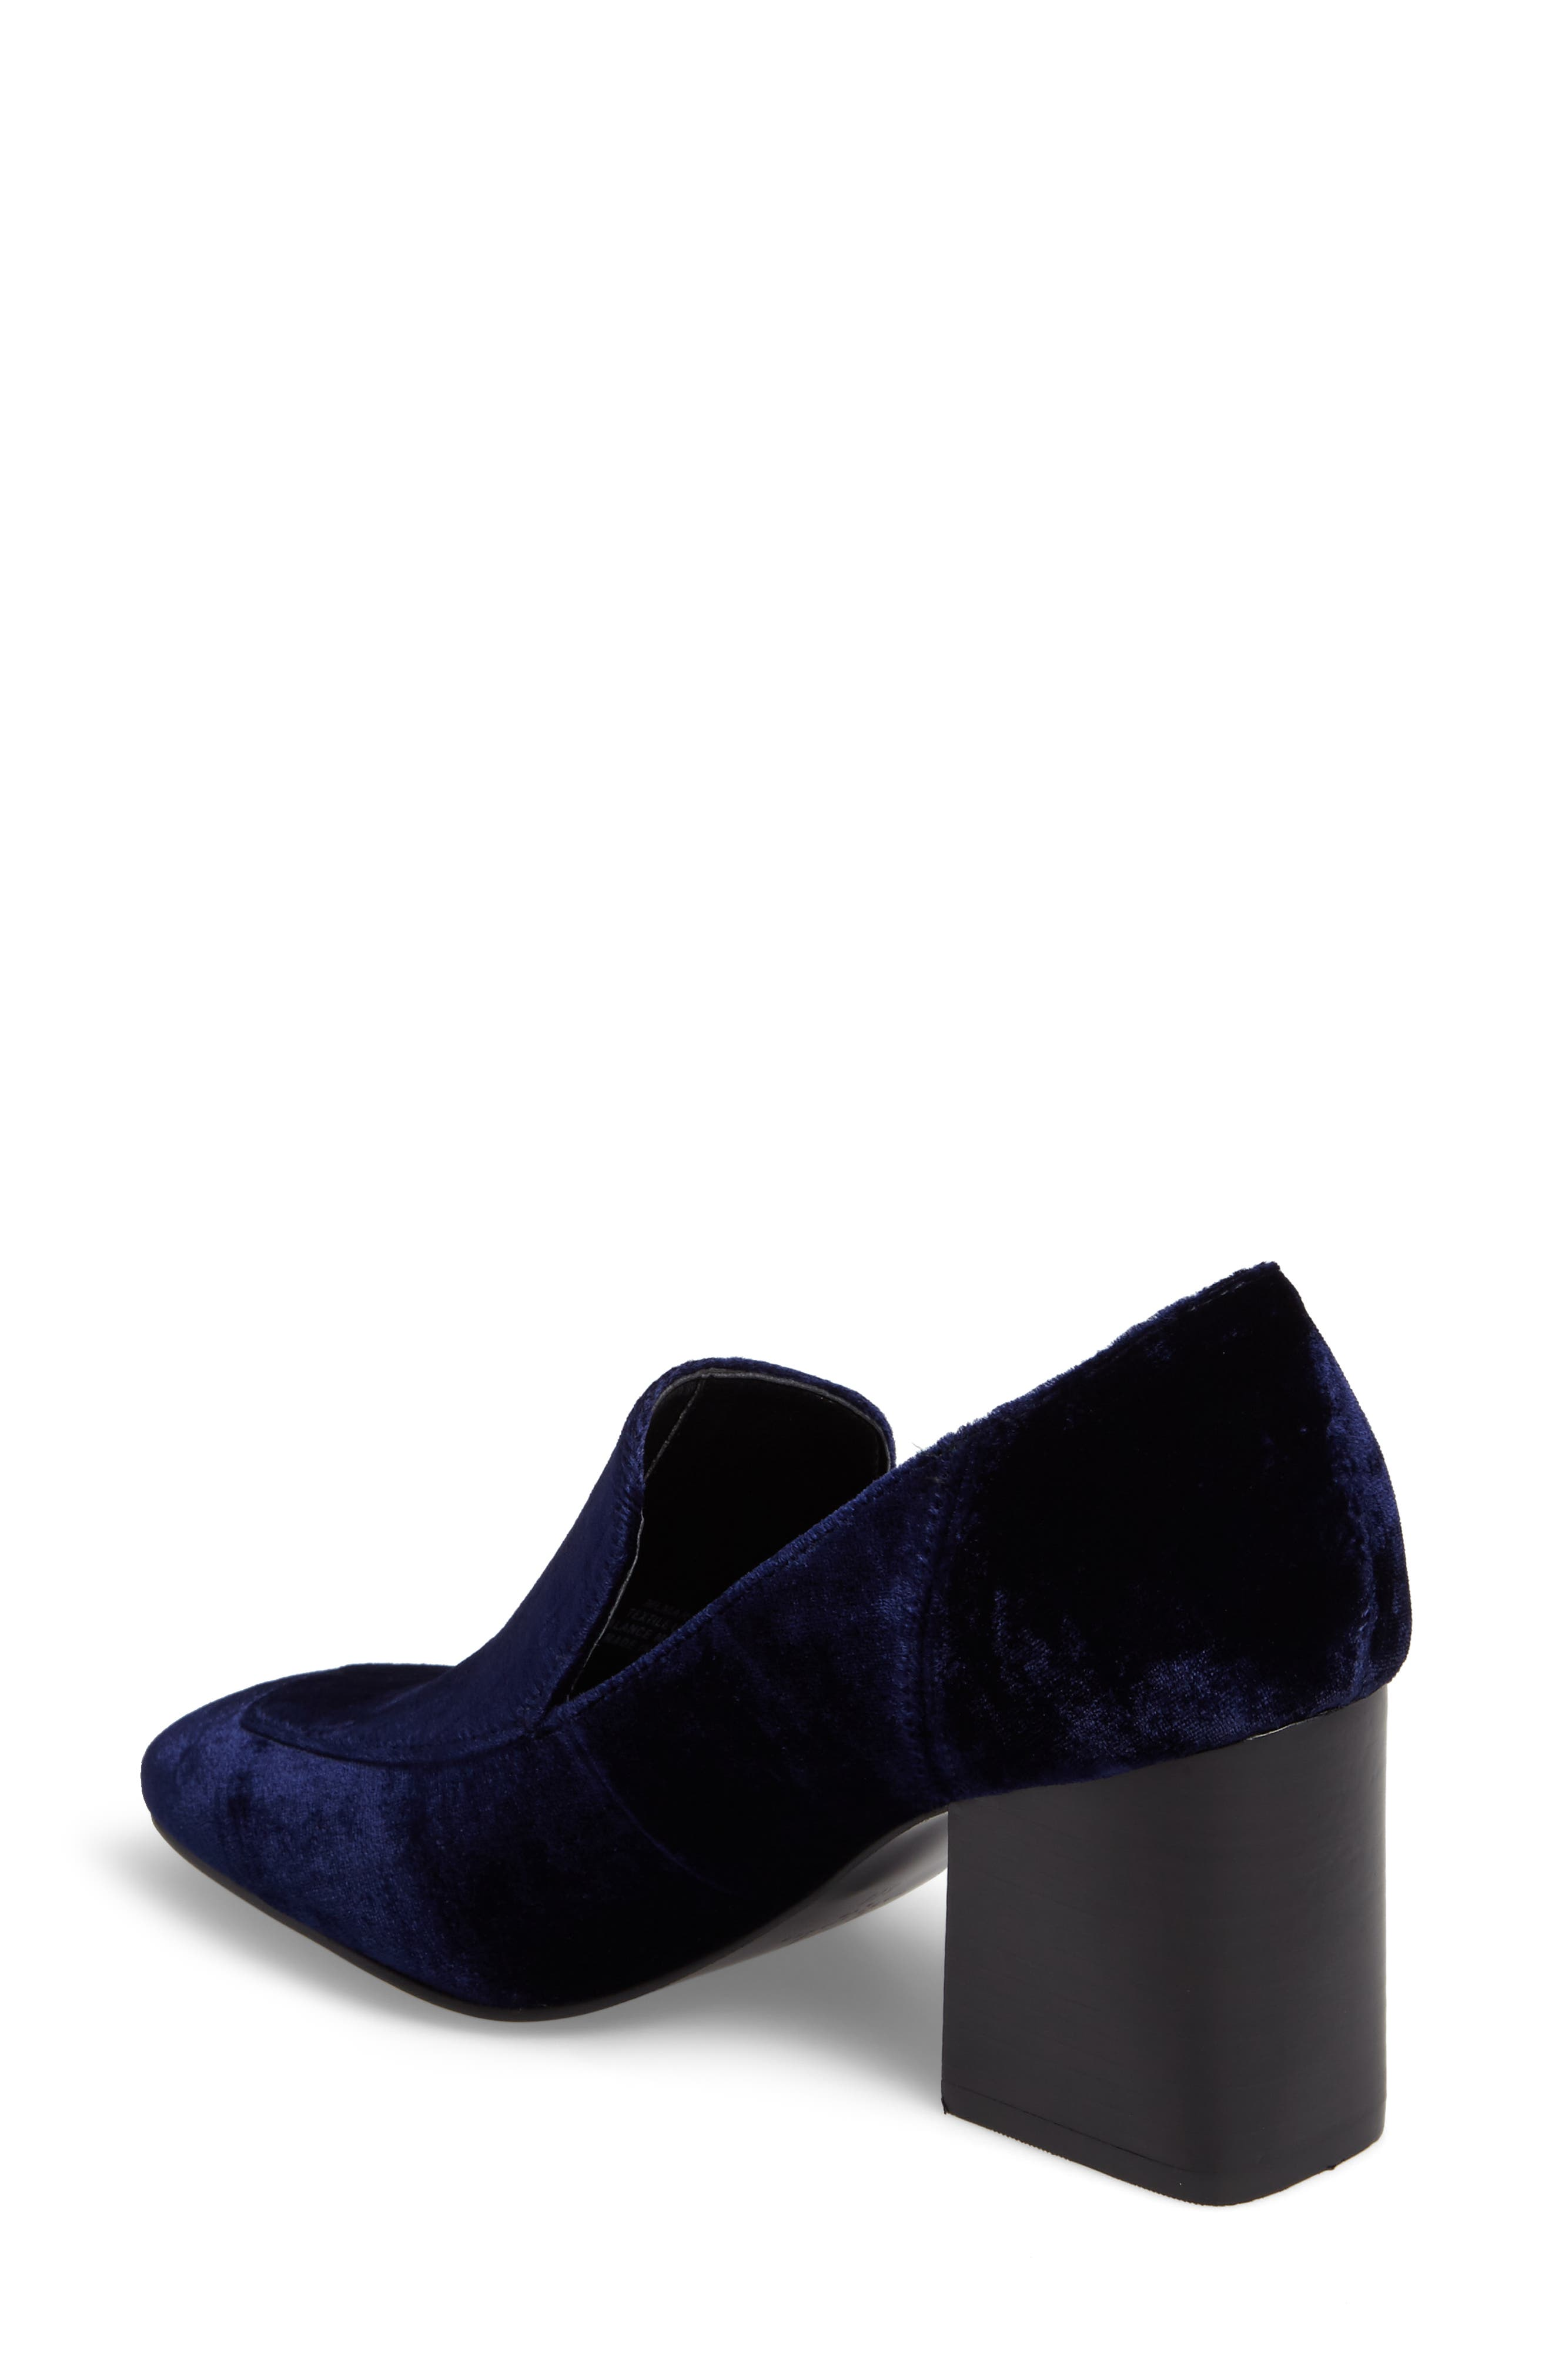 Marlo Loafer Pump,                             Alternate thumbnail 10, color,